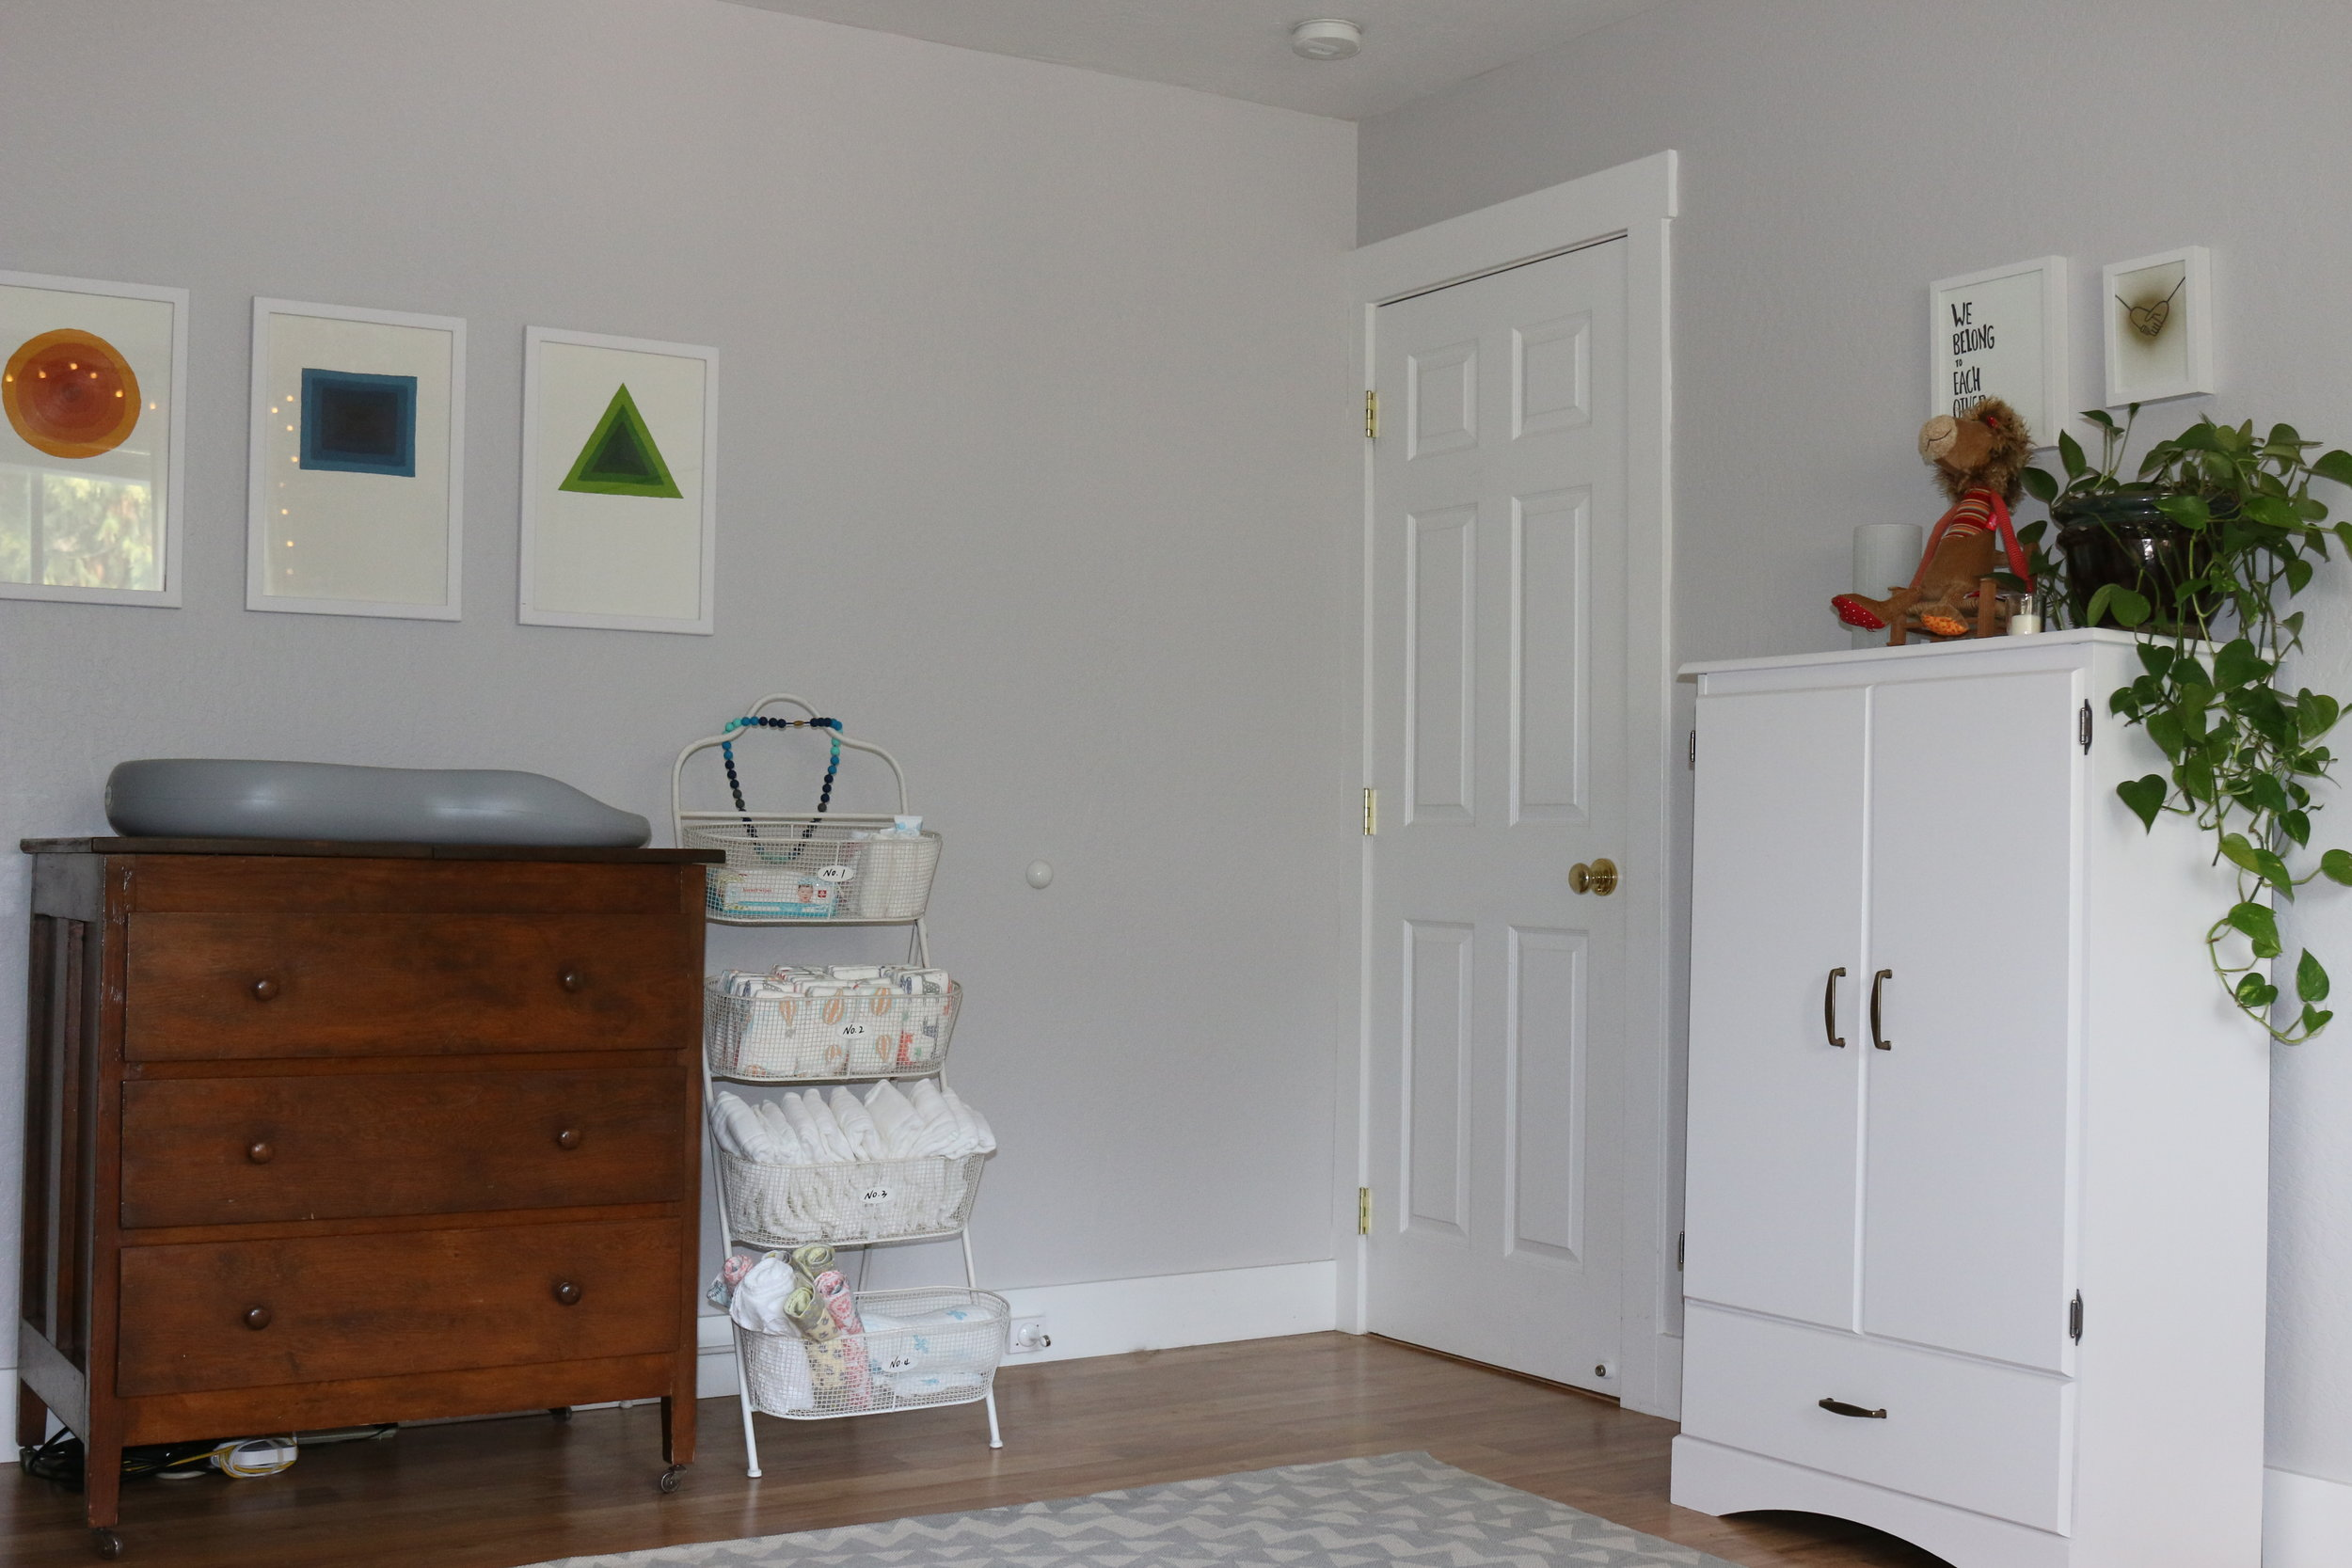 The white armoire is from a garage sale and was repainted, the art above the armoire is from www.jaybryantjones.com who happens to be Daddy.